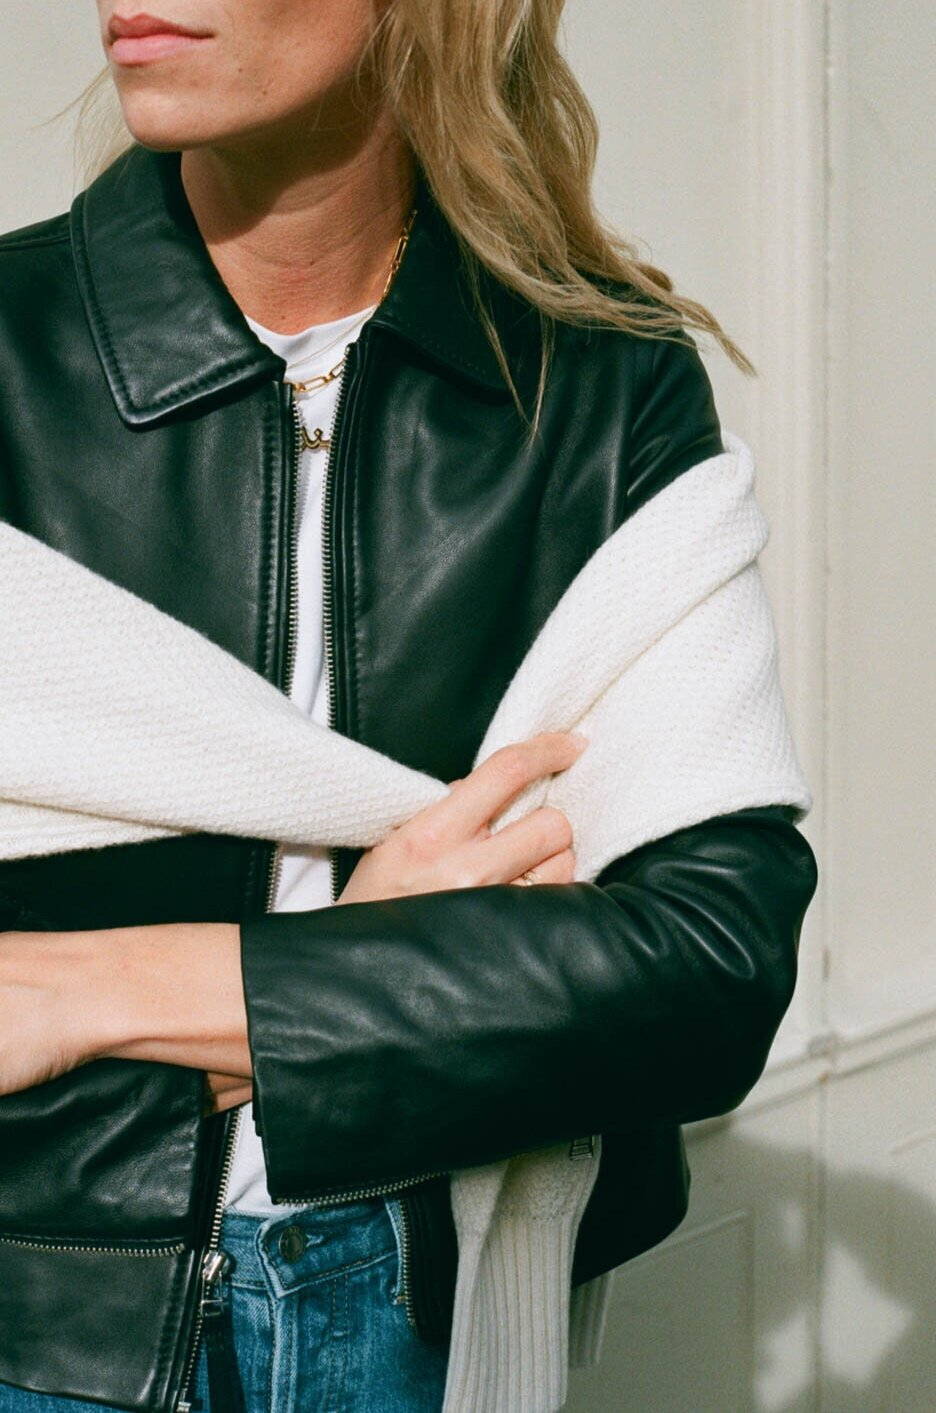 - a sustainable leather jacket